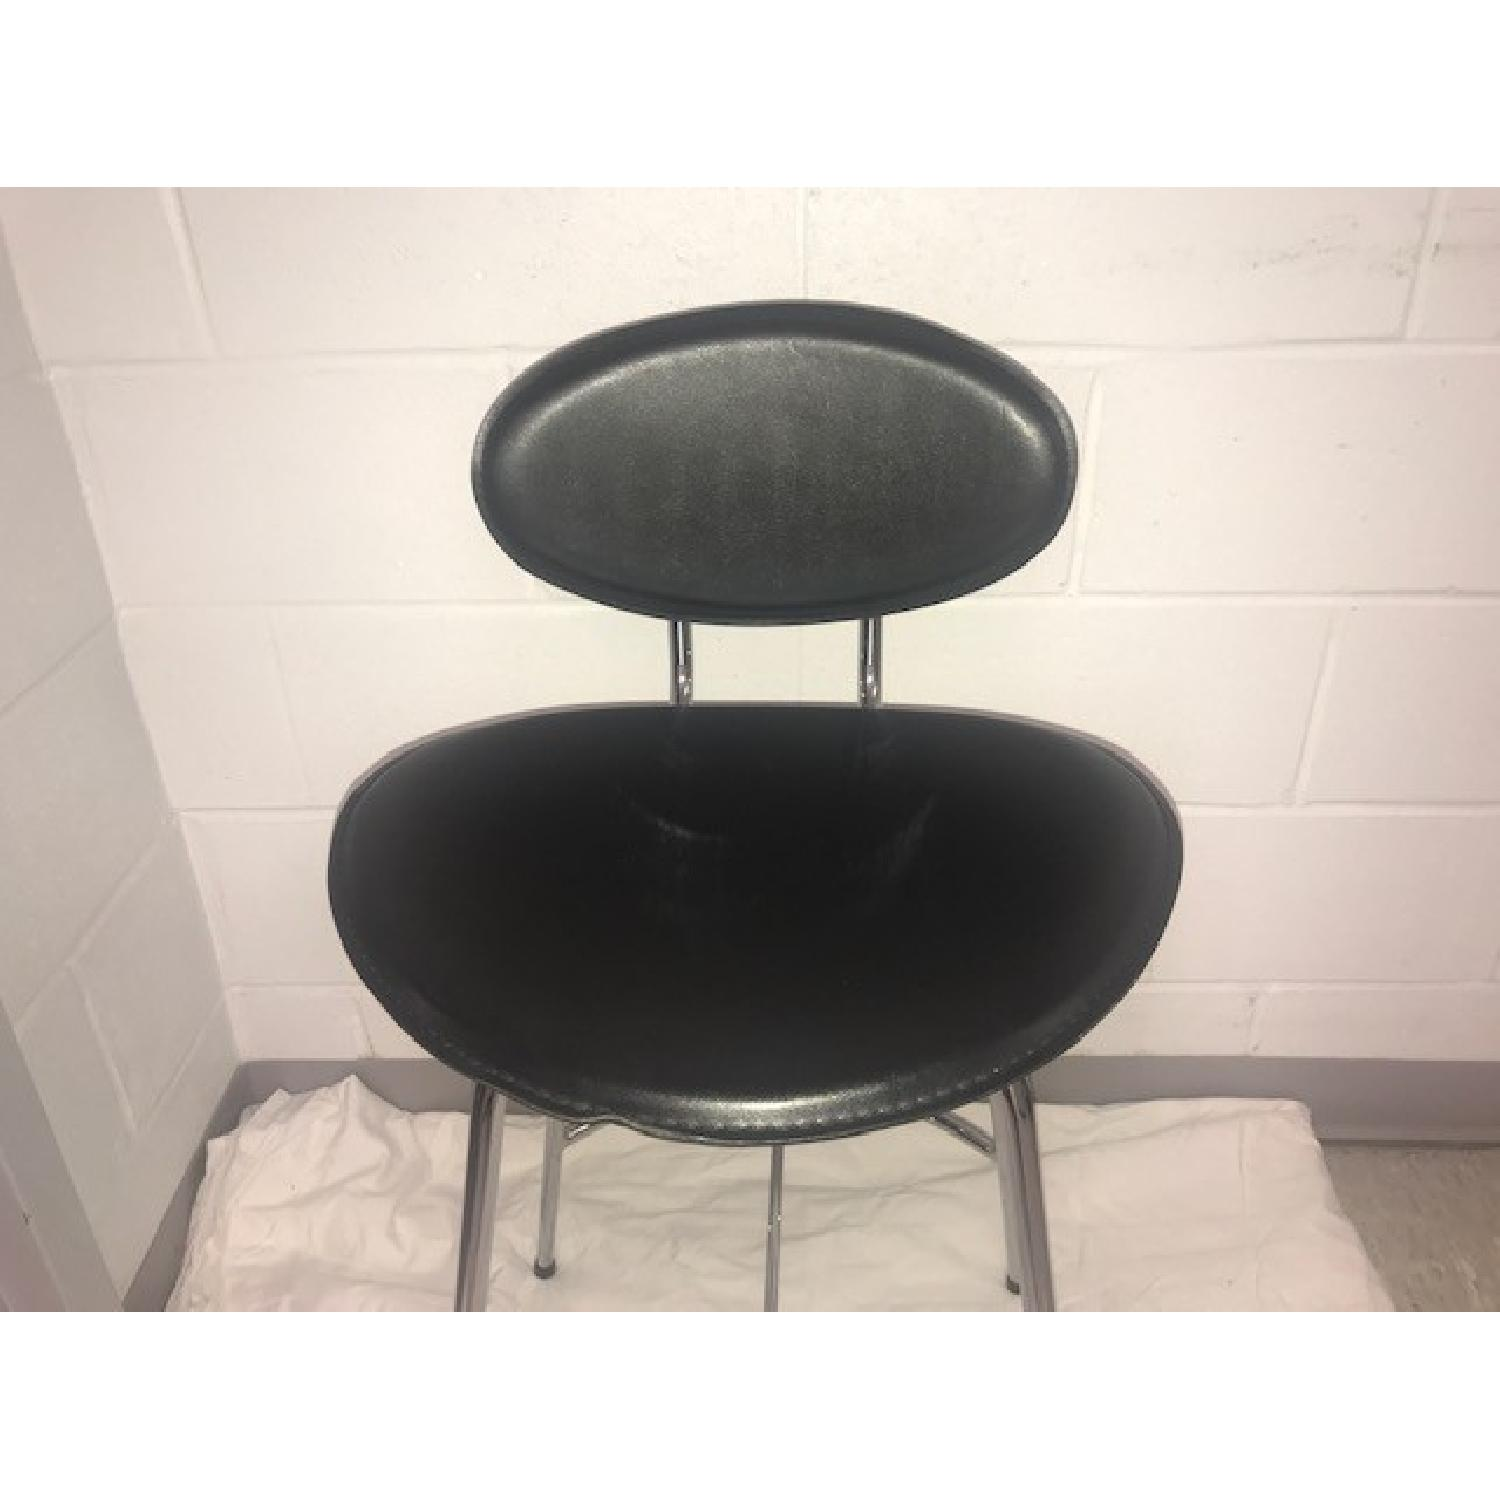 Room & Board Chrome & Black Barstools-3